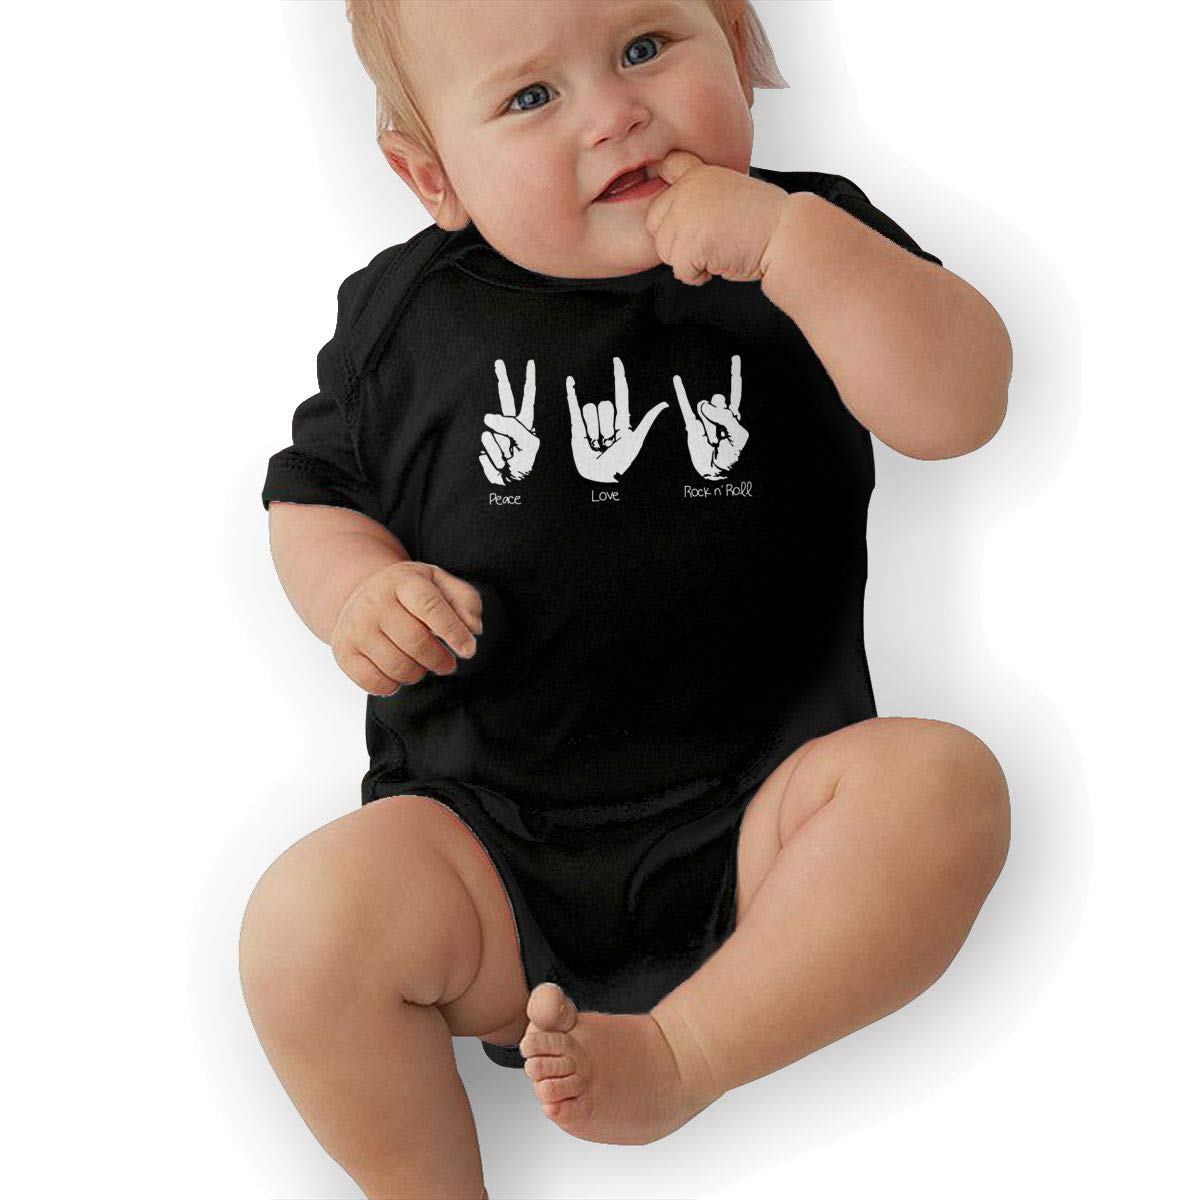 Peace Love and Rock and Roll Newborn Infant Toddler Baby Girls Boys Bodysuit Short Sleeve 0-24 MonthsBlack